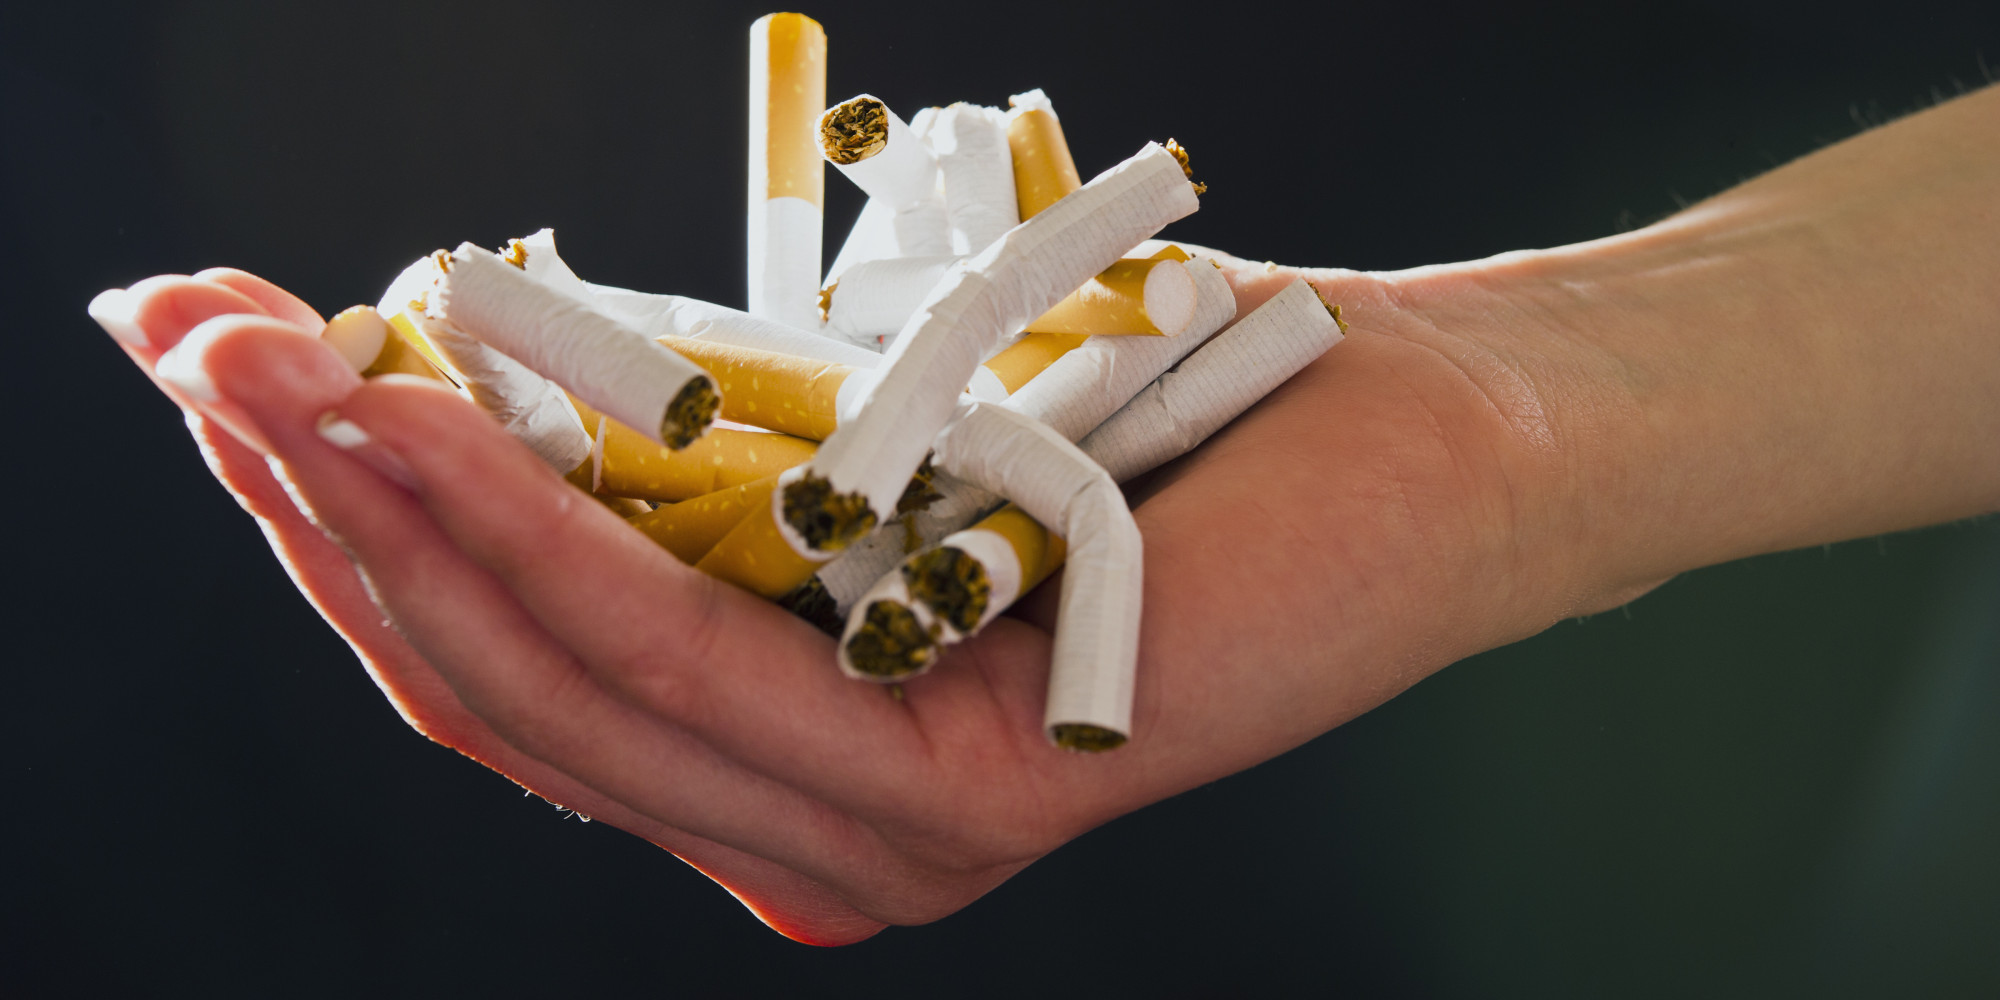 essay on stop smoking Arraycategory: argumentative persuasive example essays title: it's time to ban smoking in public places by banning smoking in all public areas, the g.